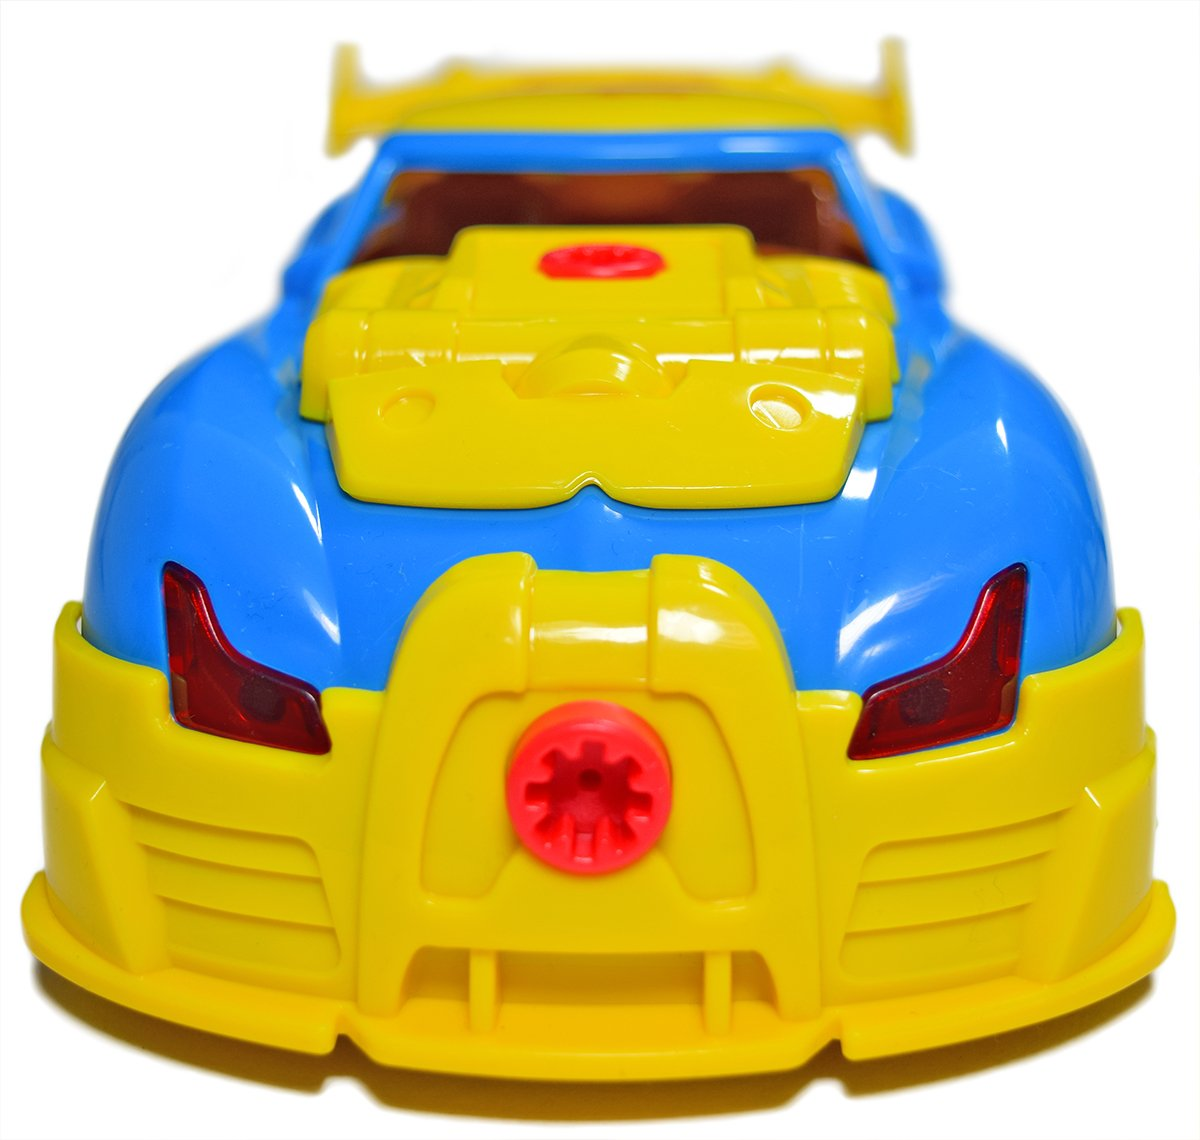 CoolToys Custom Take-A-Part Car Playset – Sports Car with Electric Play Drill and 30 Car Modification Pieces – Motion Activated Lights and Sounds by CoolToys (Image #6)